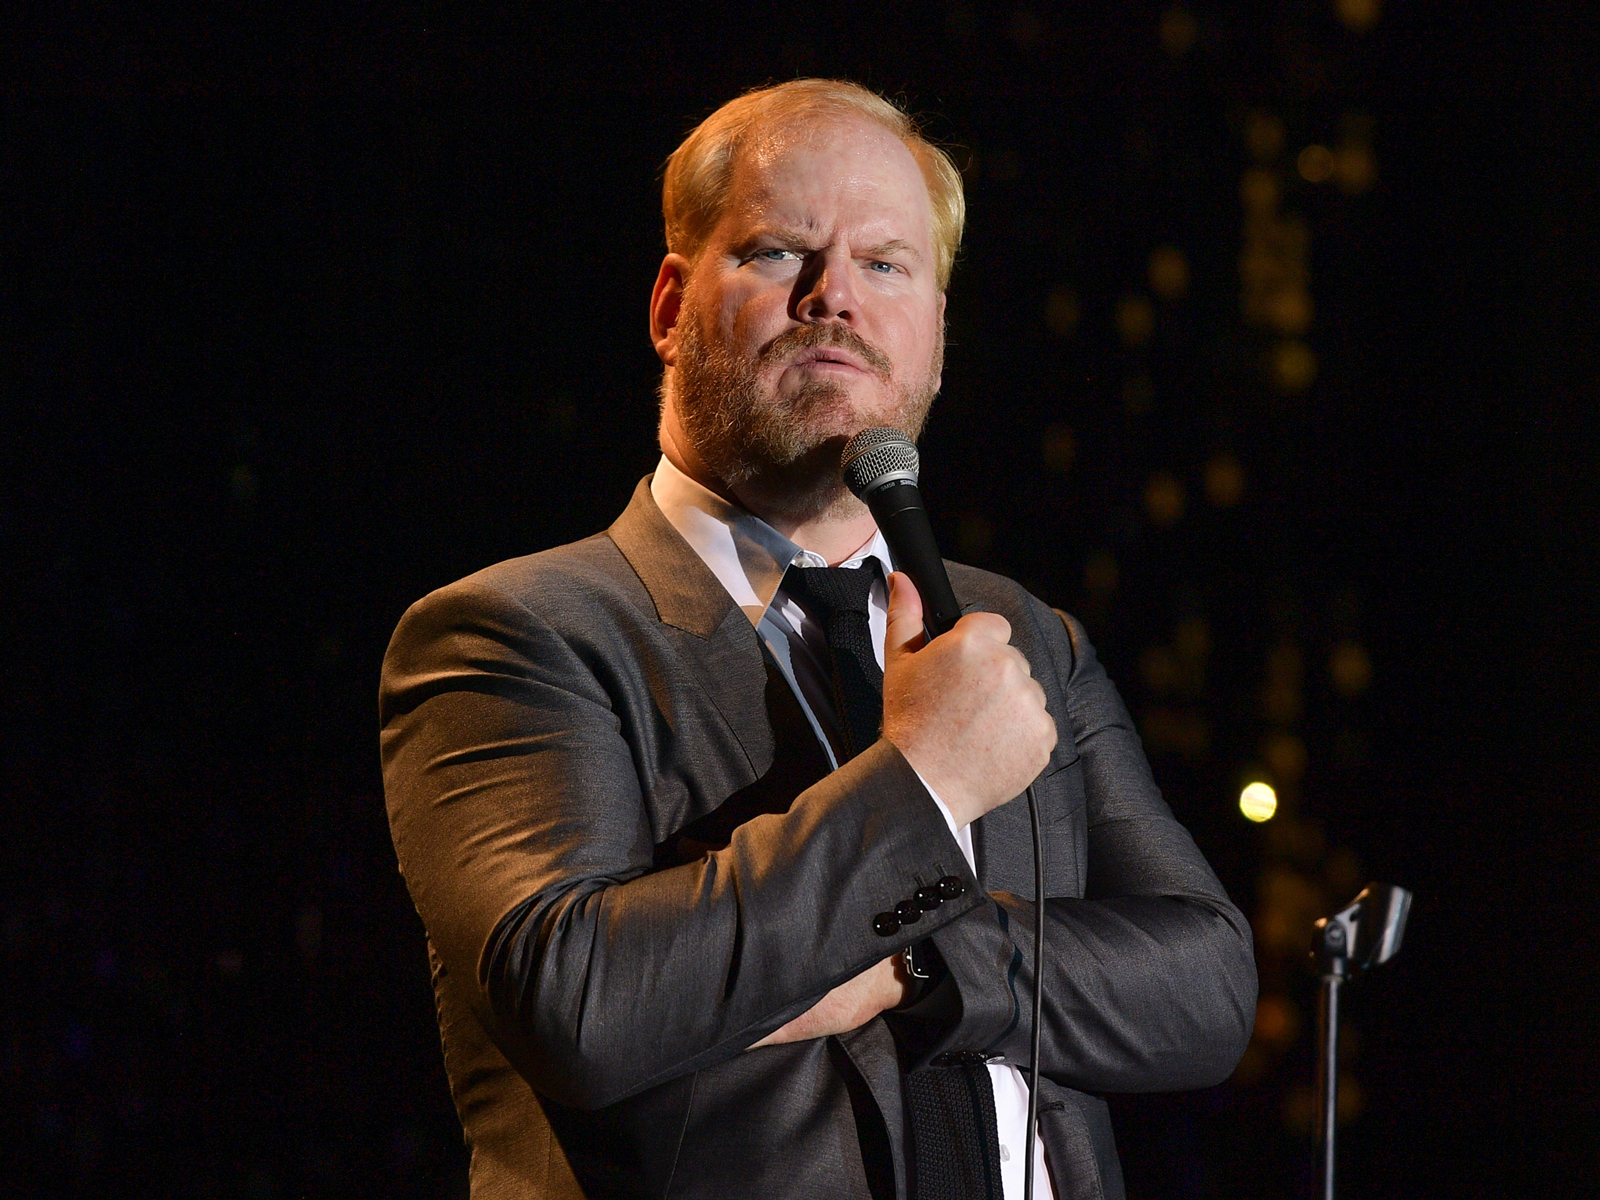 Wait, Why Does Jim Gaffigan Hate Craft Beer So Much?